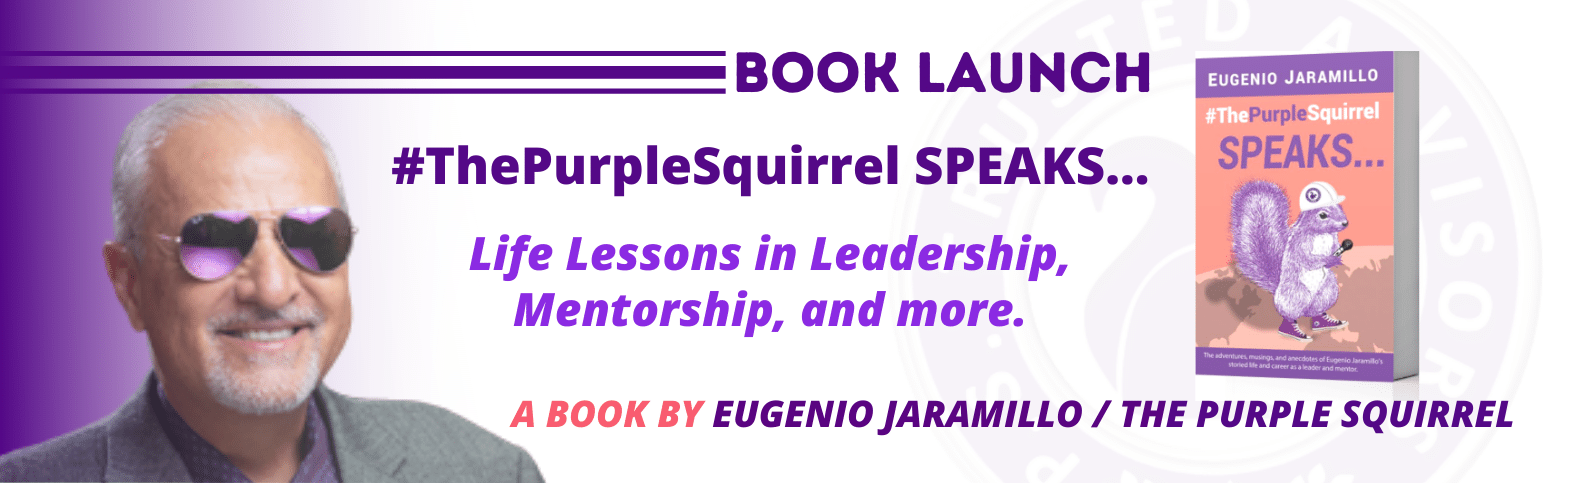 The Purple Squirrel SPEAKS book by Eugenio Jaramillo